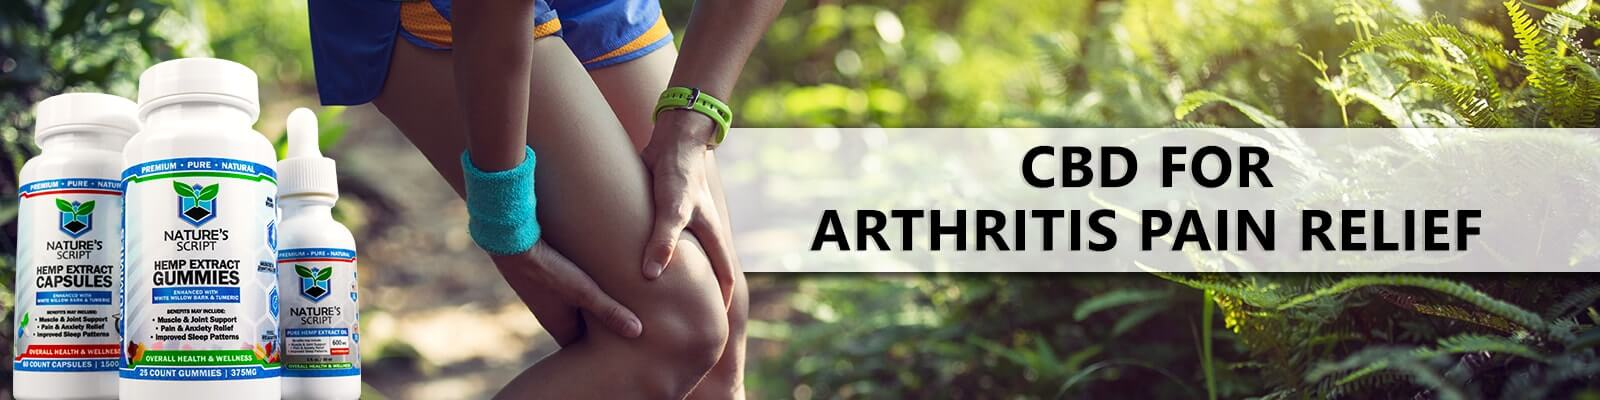 cbd for arthritis pain relief